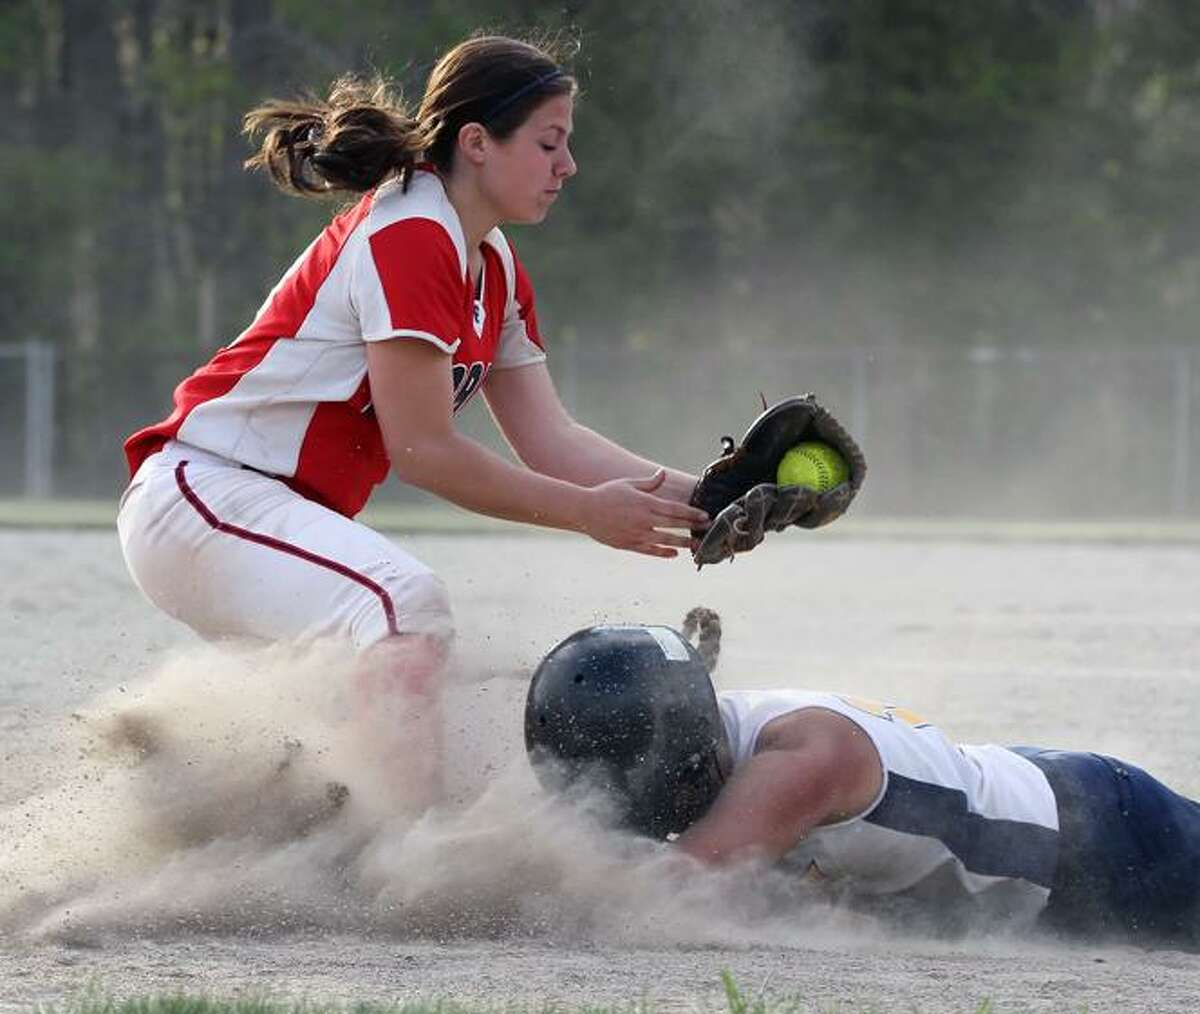 Special to the Press 04.20.12. Mercy's Brooke Franco beats the throw home and scores Mercy's final run in Friday's softball game against Foran. Foran won, 9-4. To buy a glossy print of this photo and more, visit www.middletownpress.com